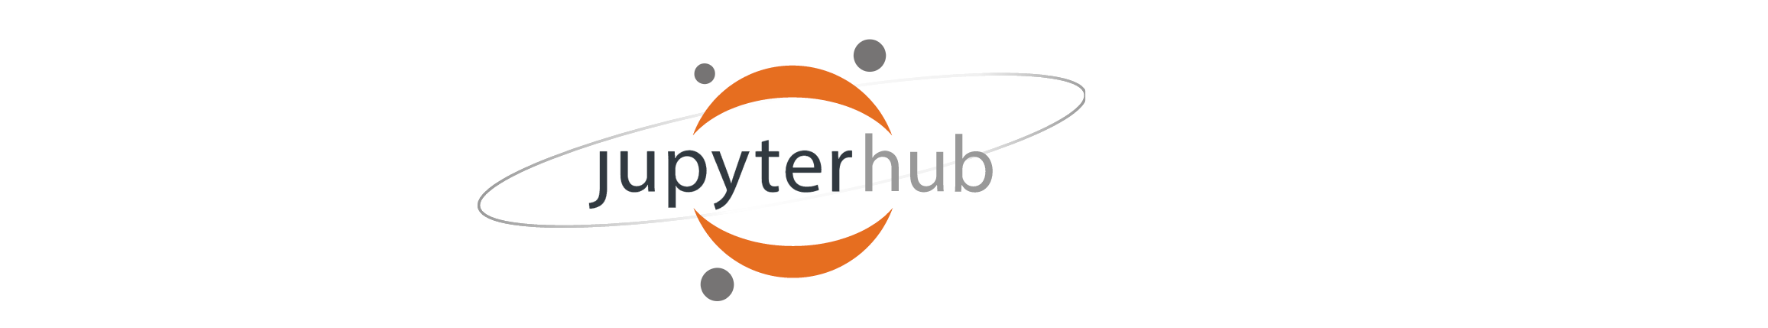 OAuth2 from inside a Jupyter Notebook - Olivier Borderies